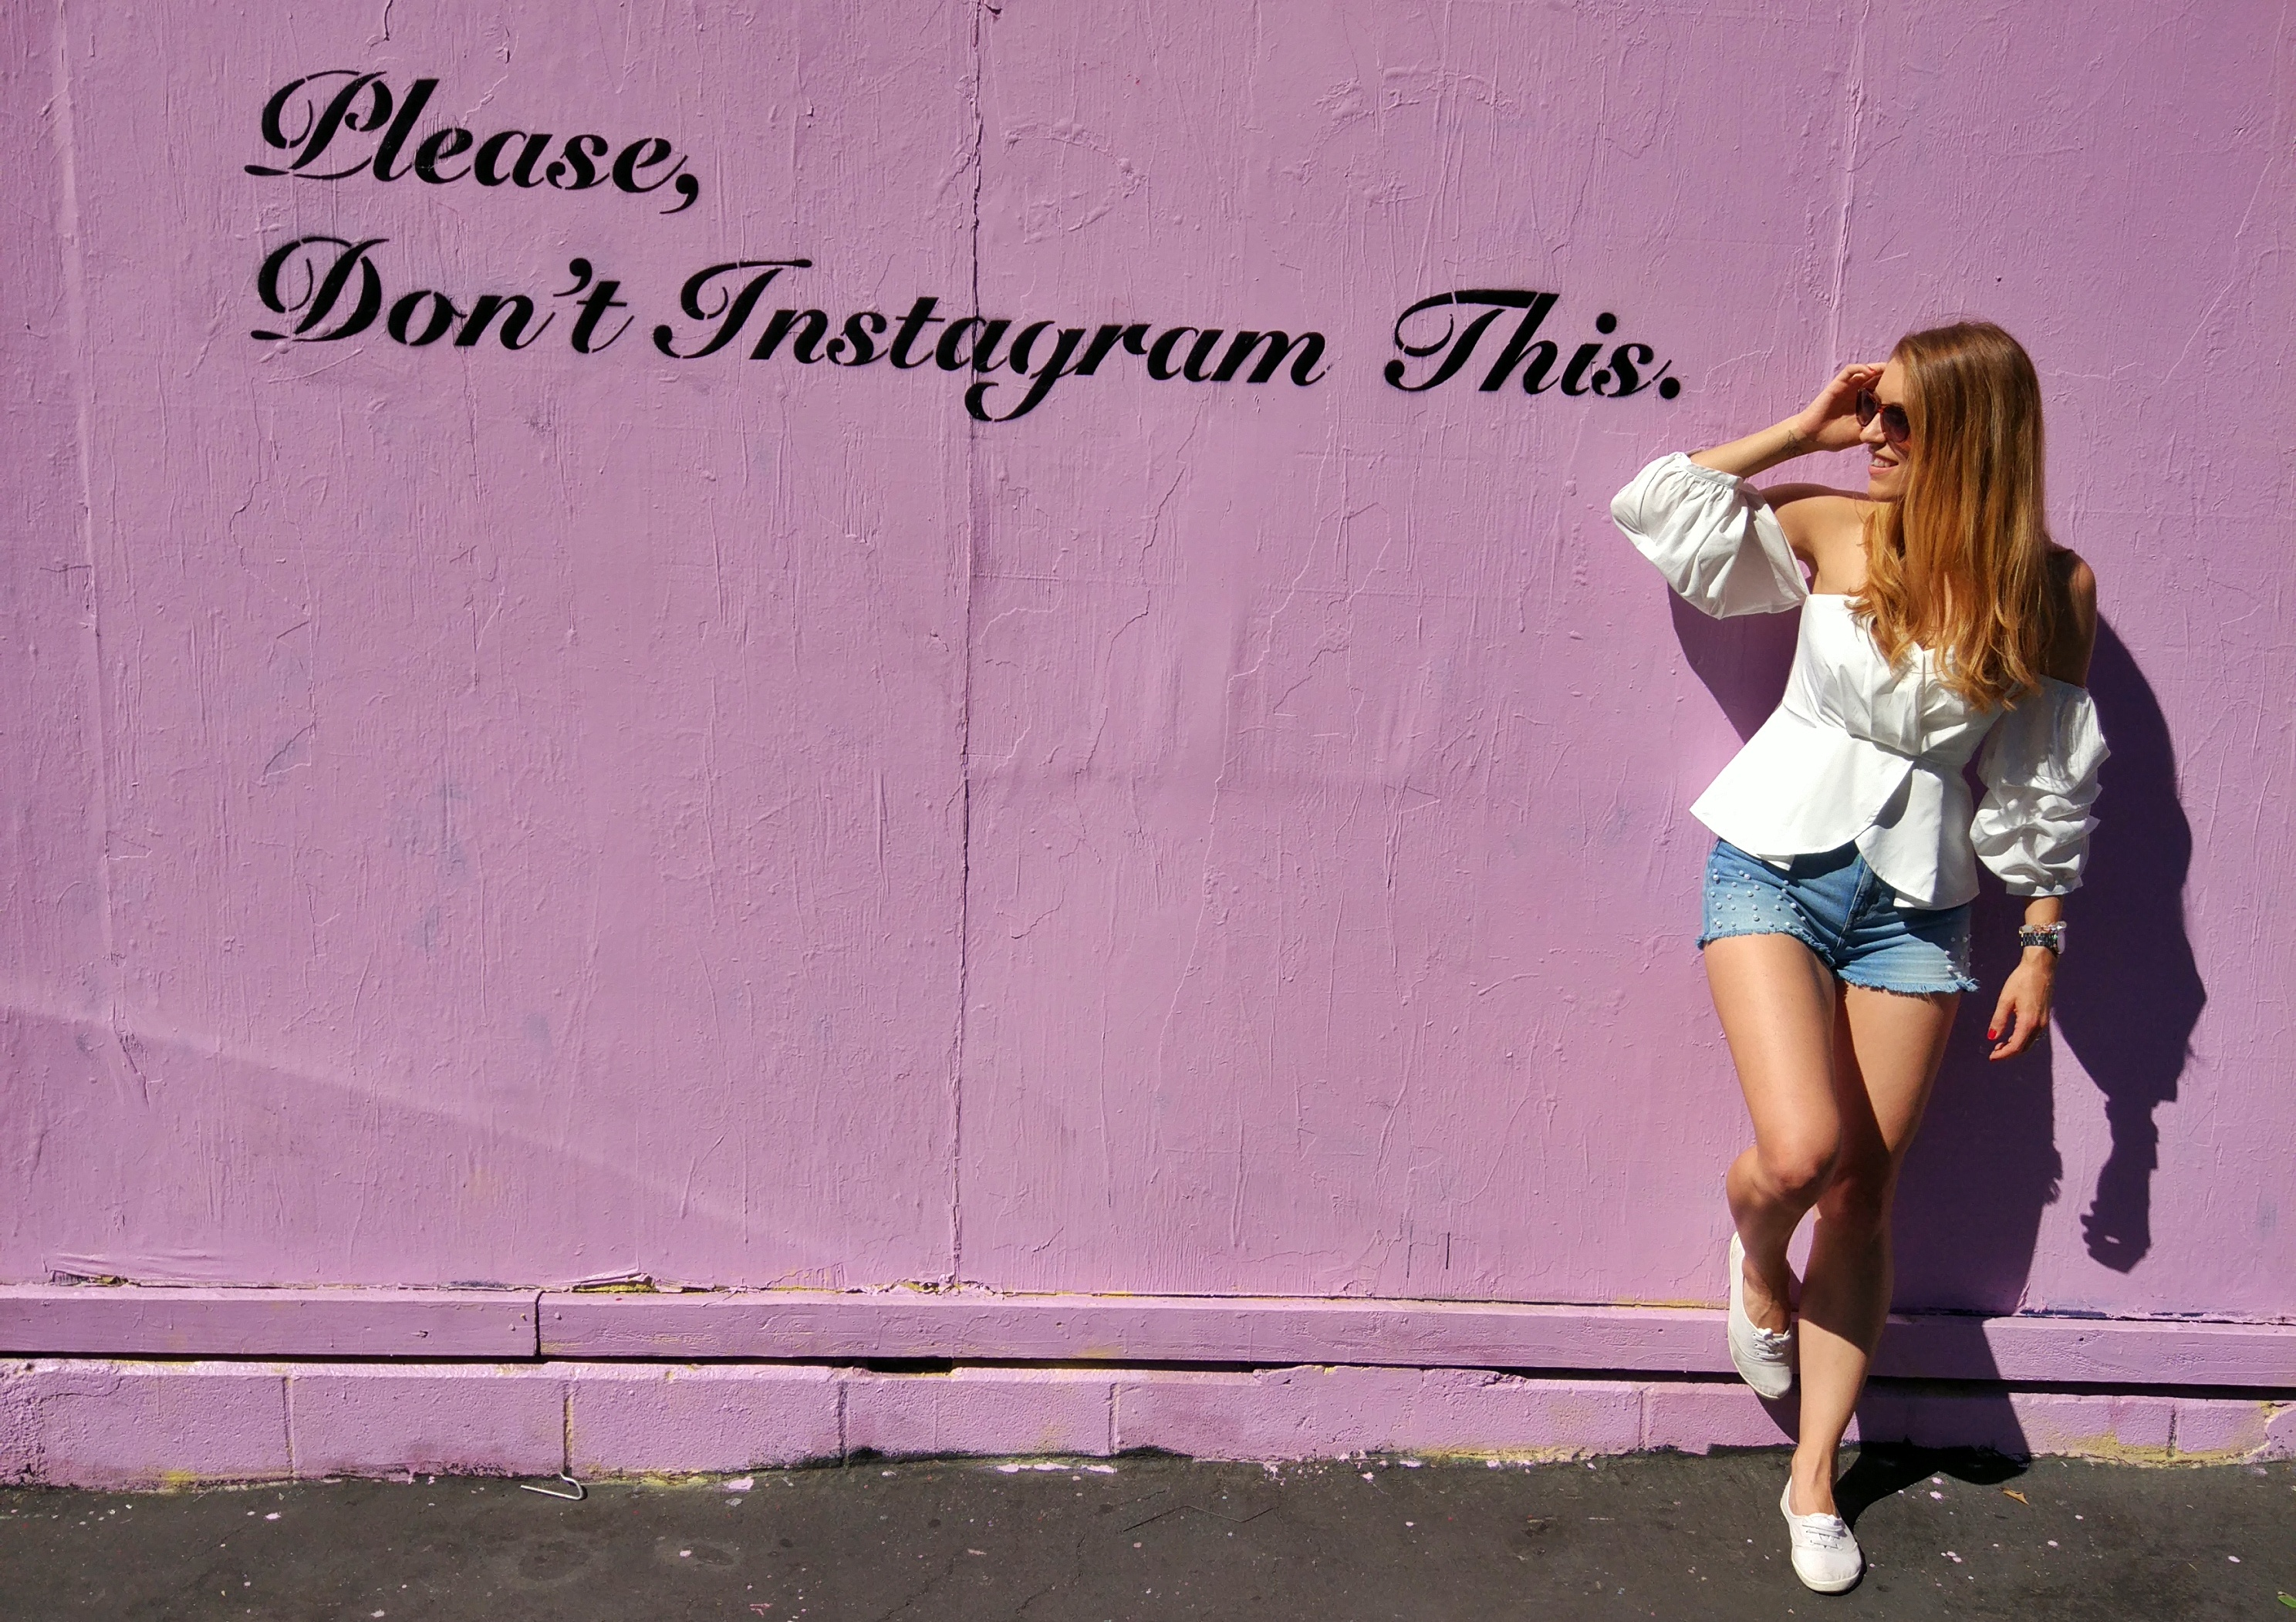 Please don't instagram this wall